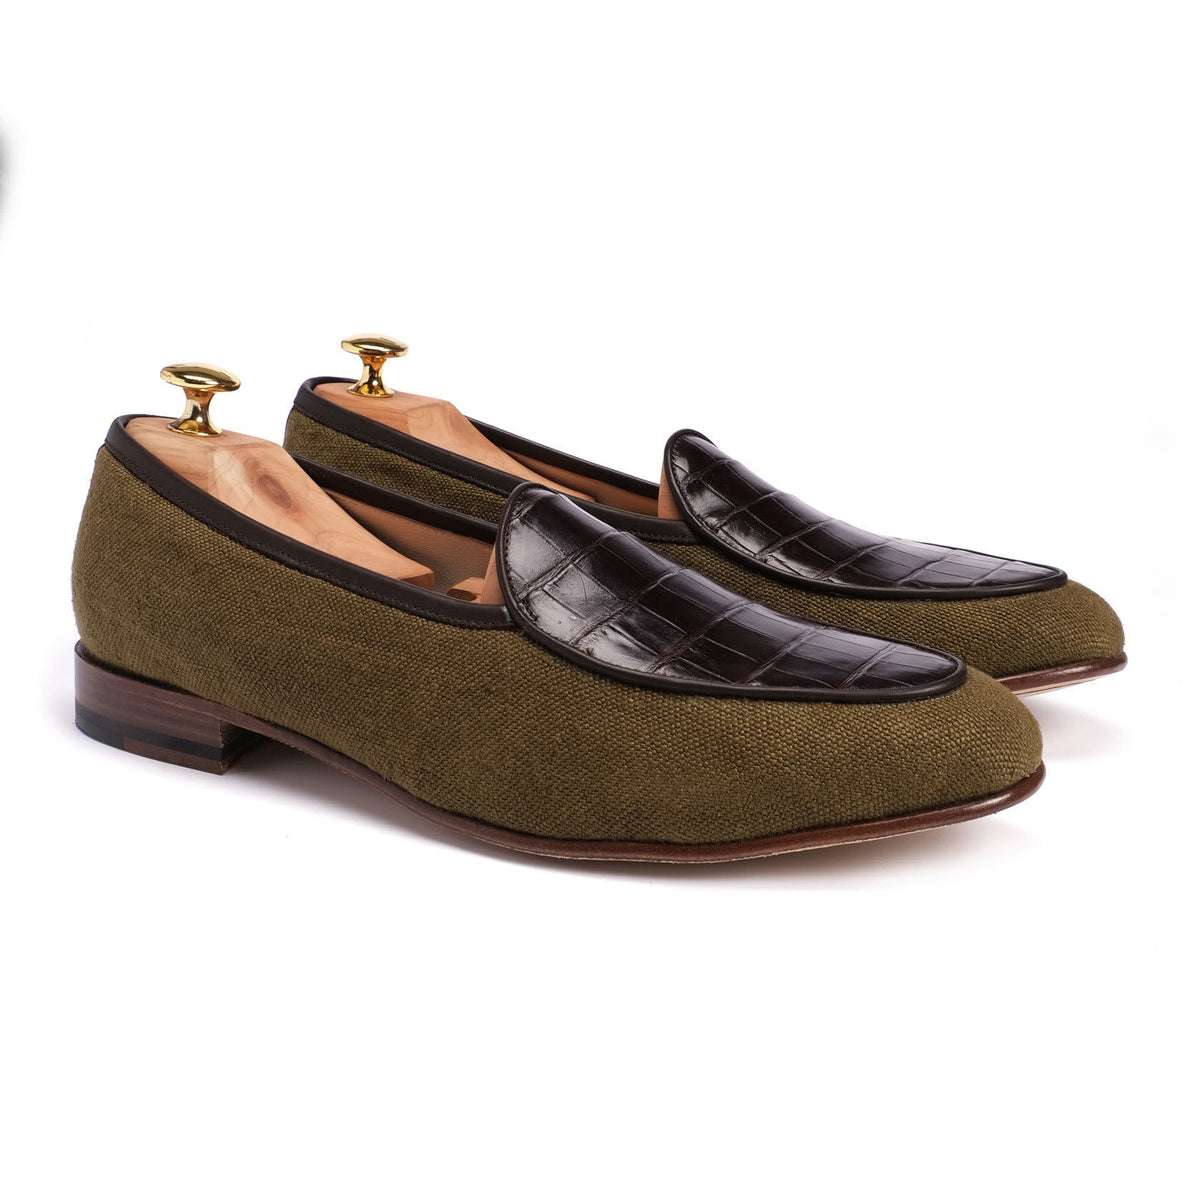 Belgian Loafers - Linen/Croco